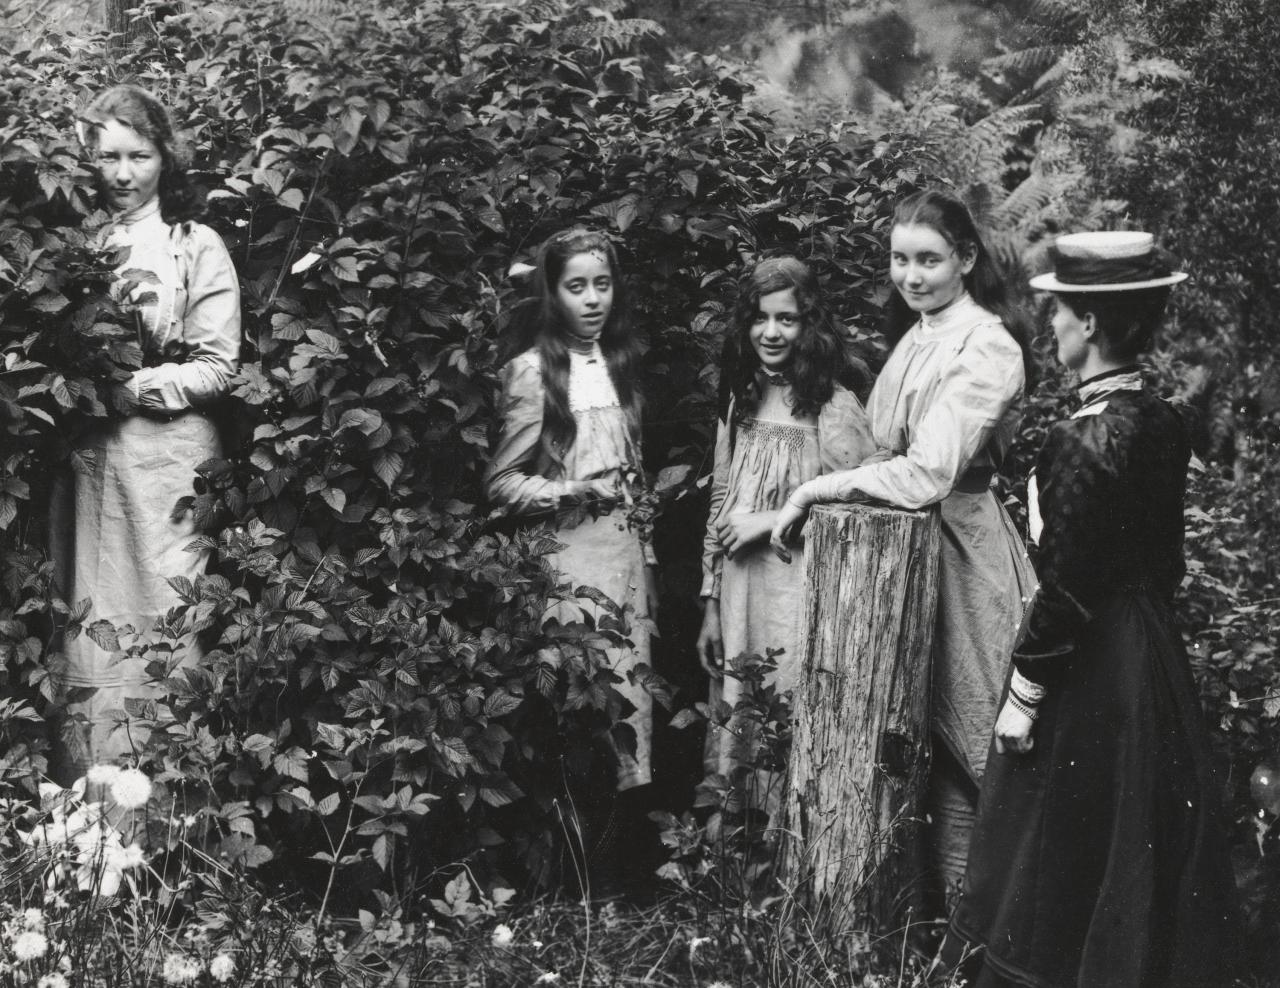 No title (Group of four girls and young woman in leafy bush)